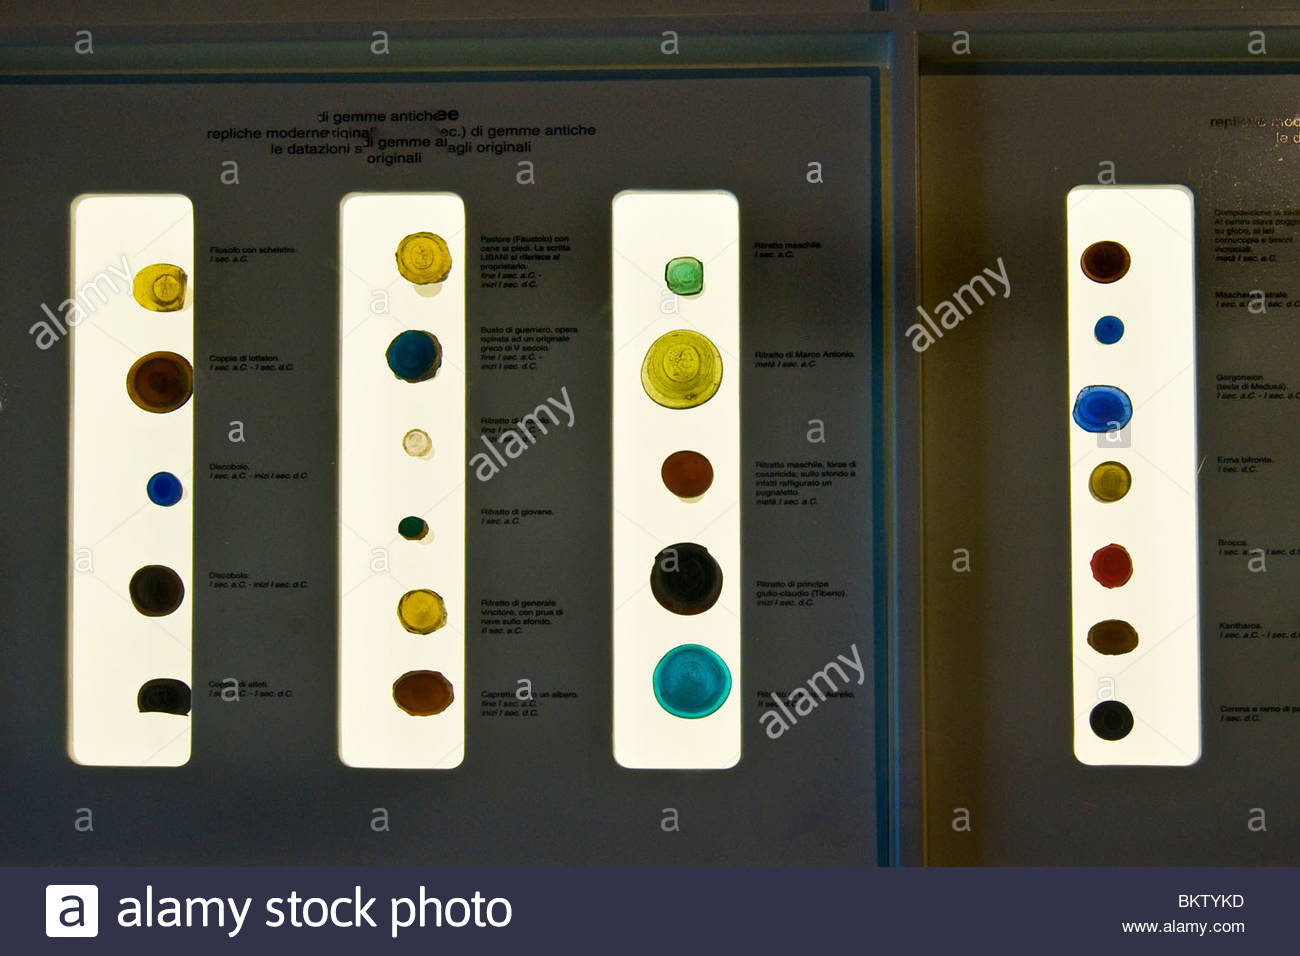 modern replicas of antique gems,Civic Museum,Como,Lombardy,Italy - Stock Image